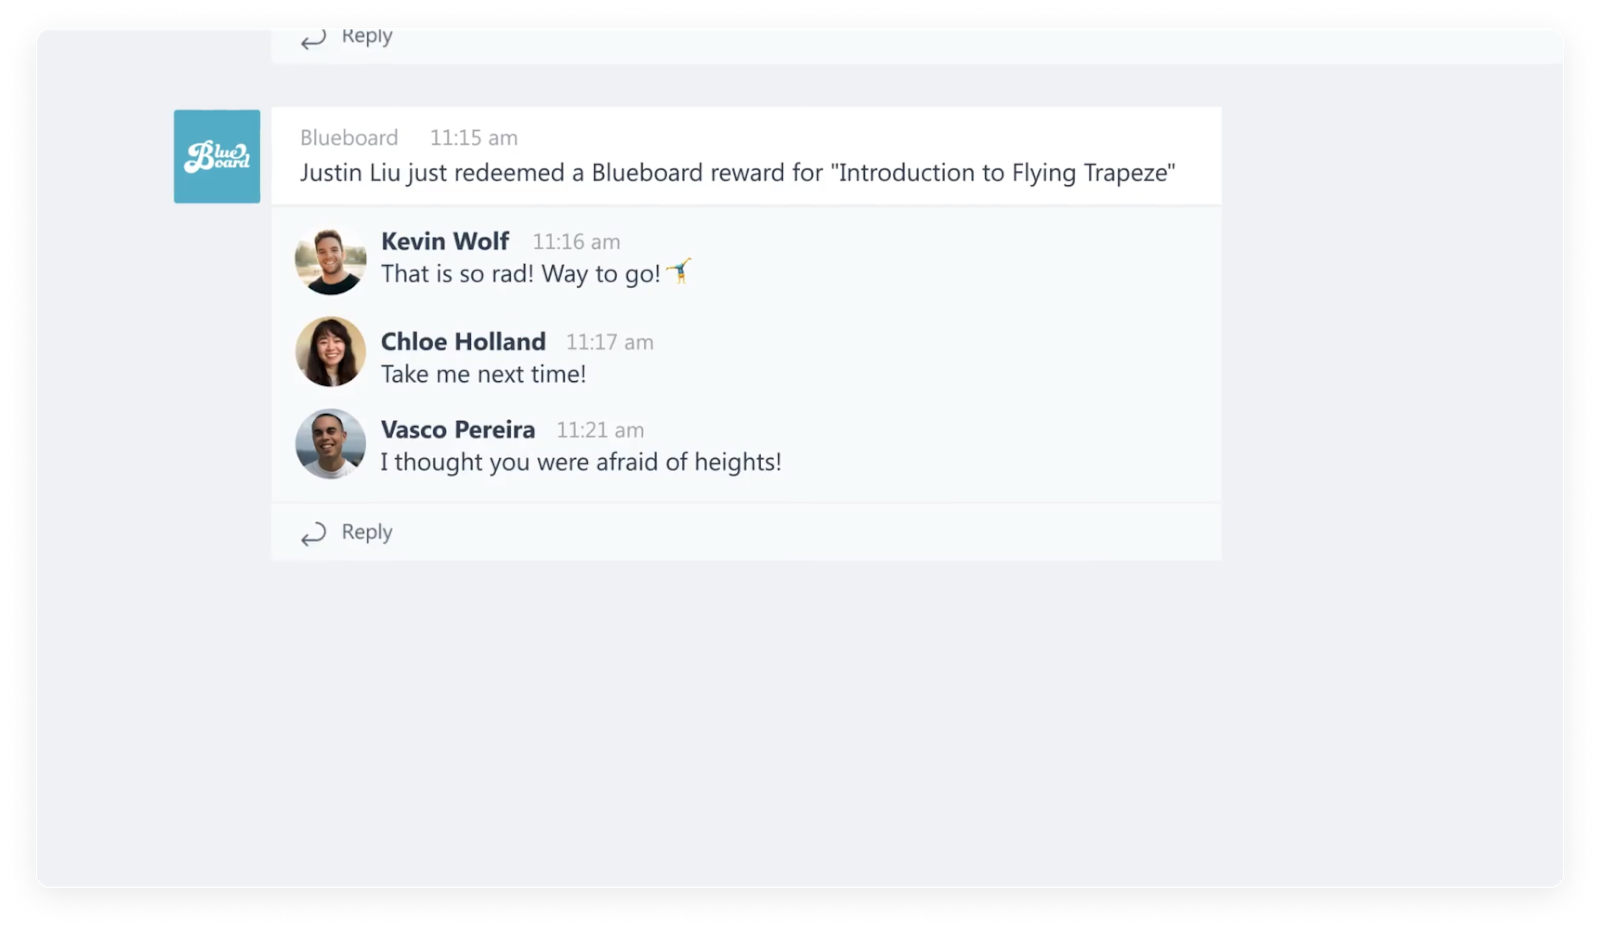 employee recognition channel in Microsoft teams